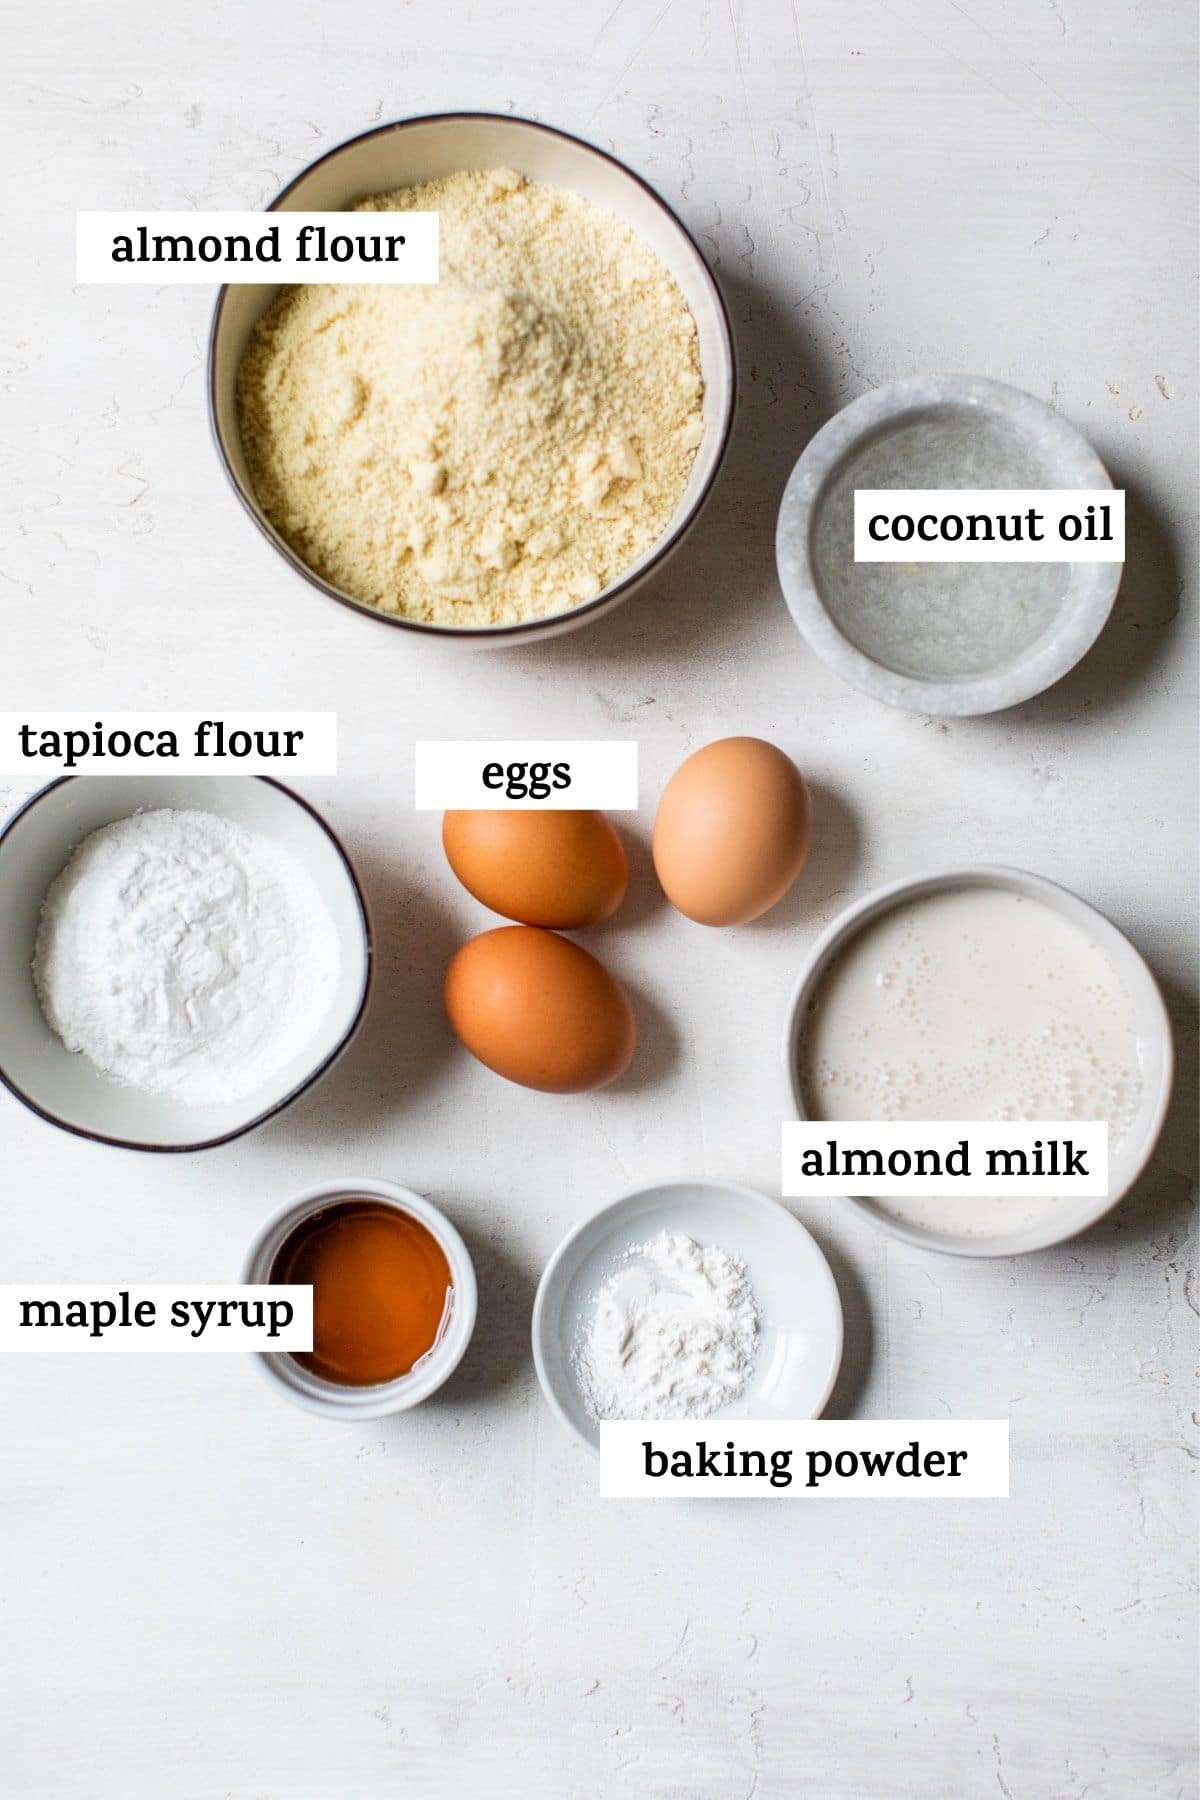 ingredients with text over top